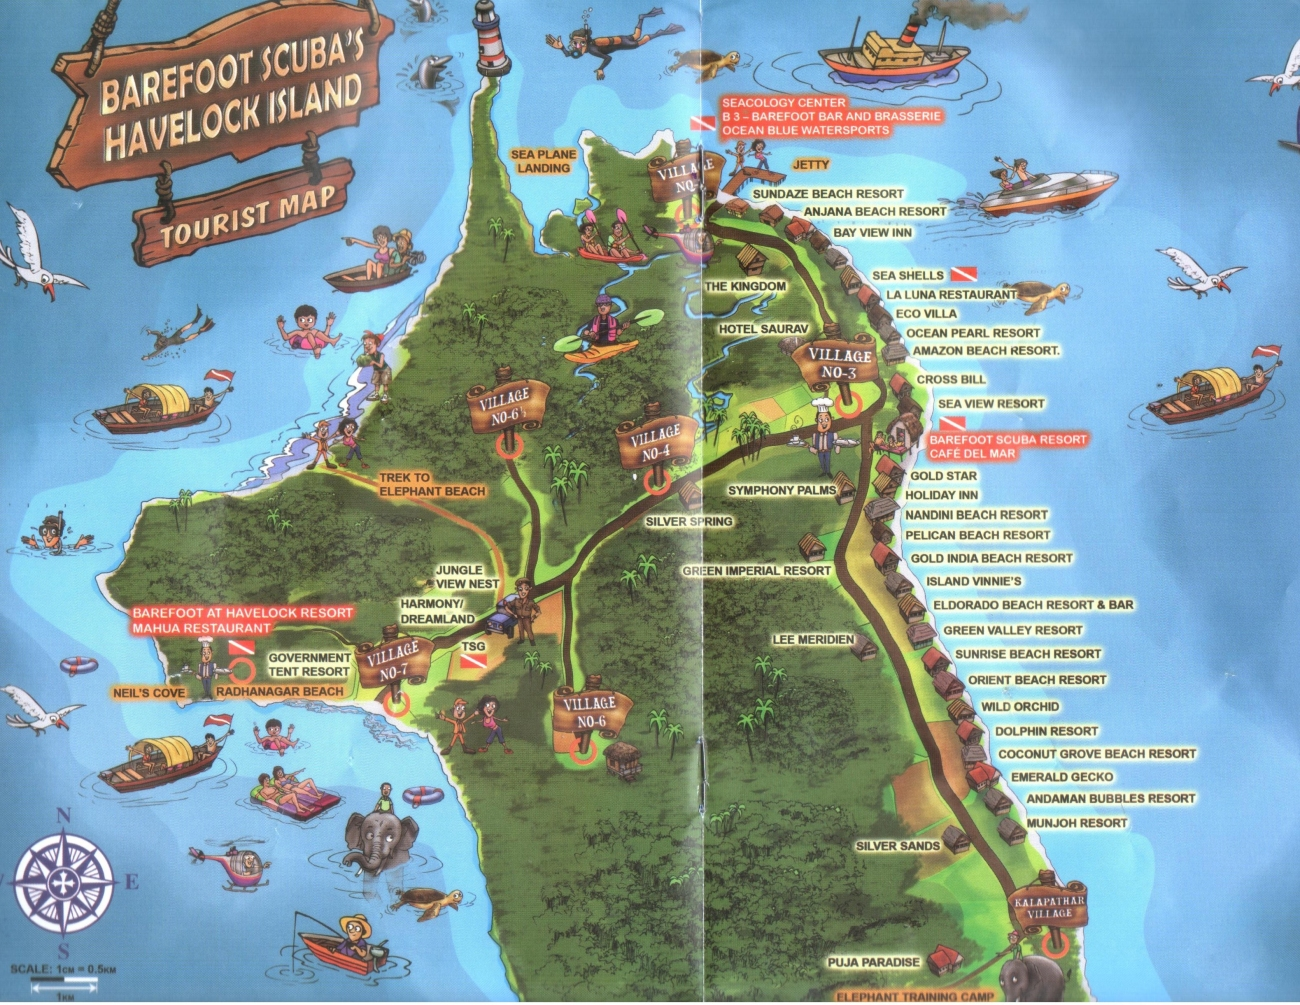 Map of  barefoot scuba havelock island